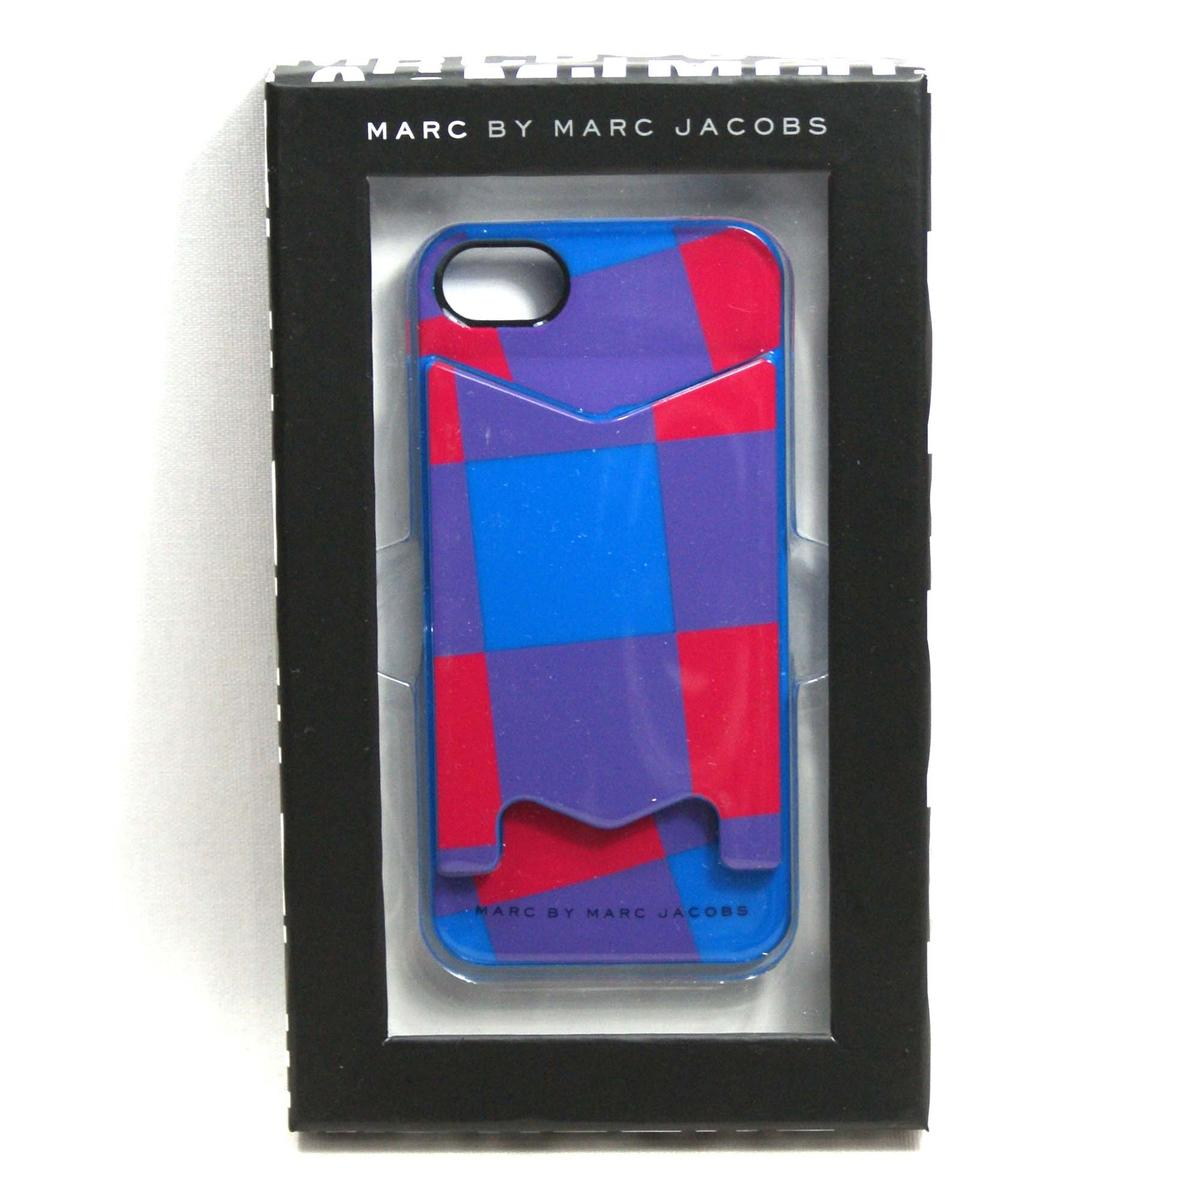 Marc By Marc Jacobs IPhone 5 Case Premium Hardcase Stacey Check ...